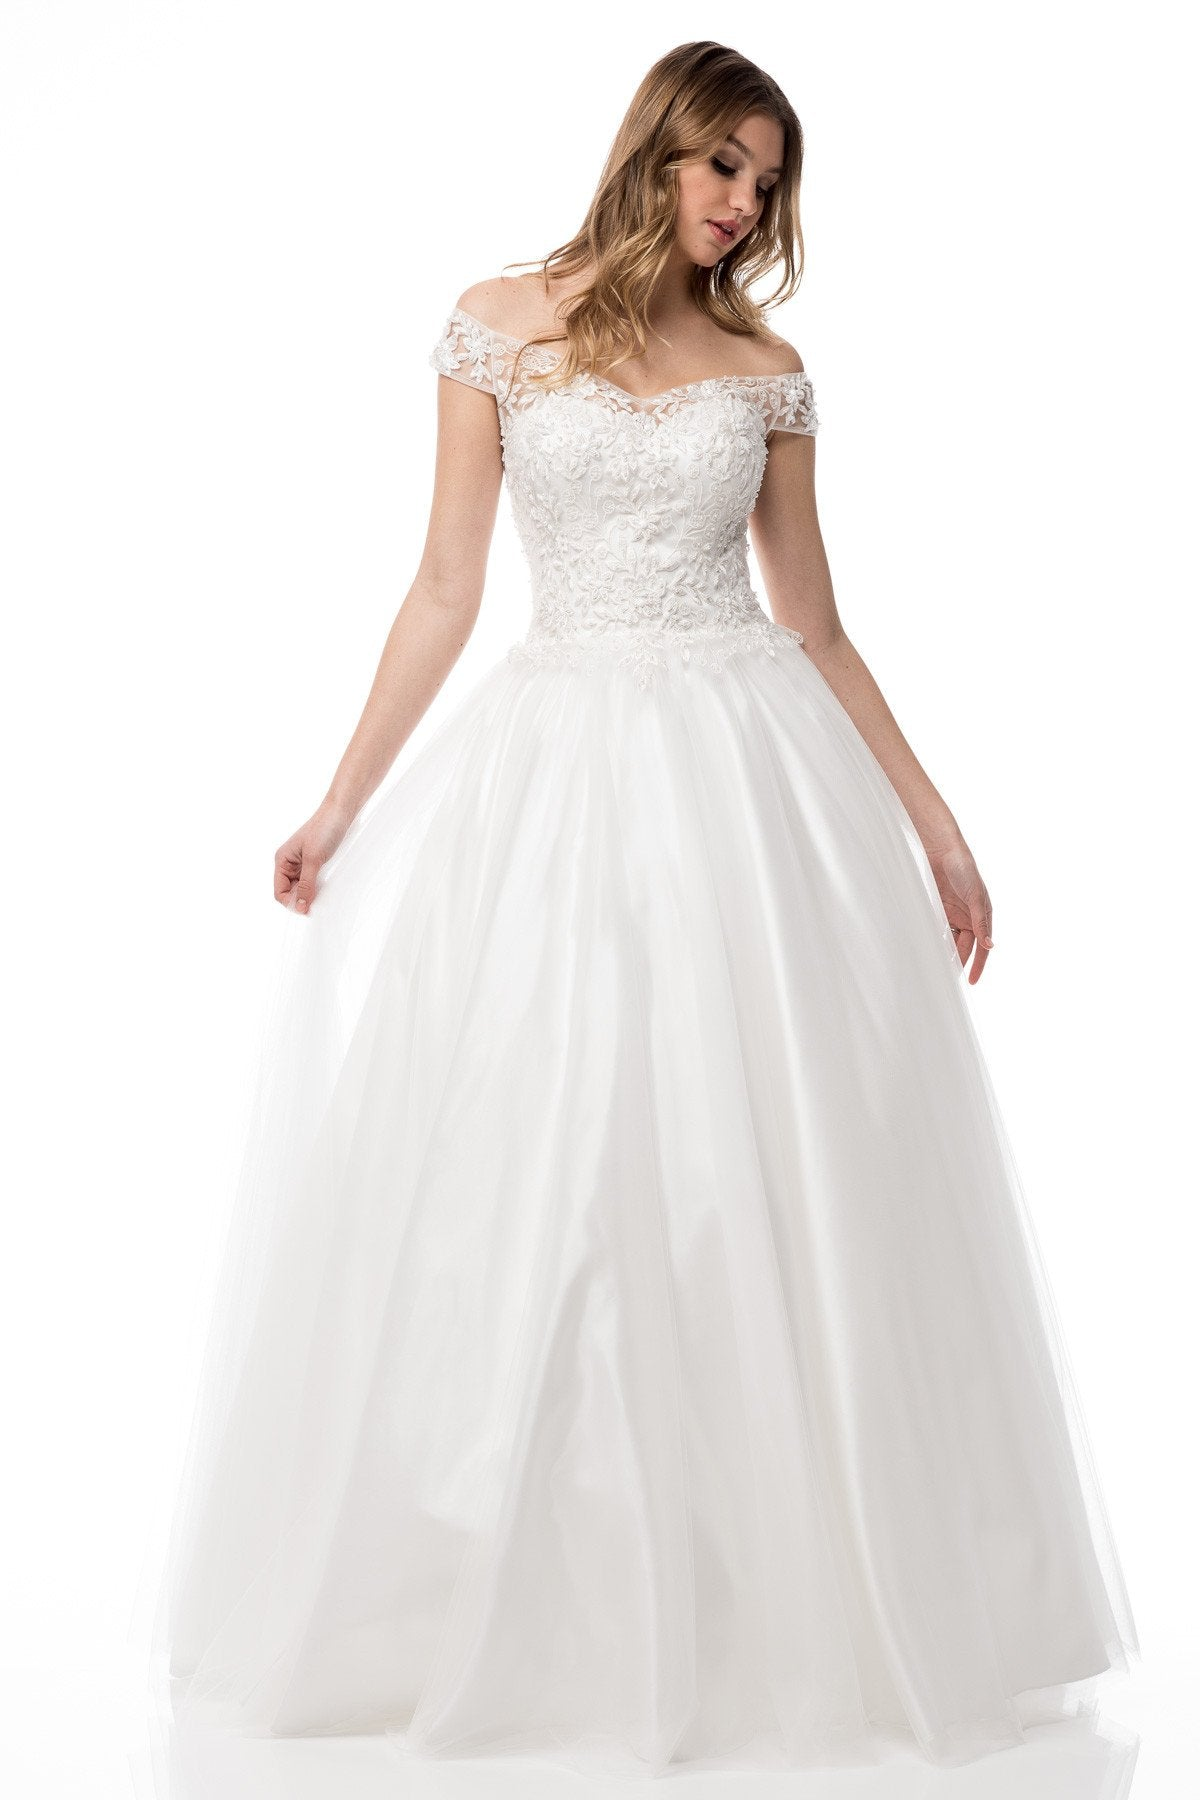 CCW61232 Off the shoulder, sweetheart neckline, ball gown